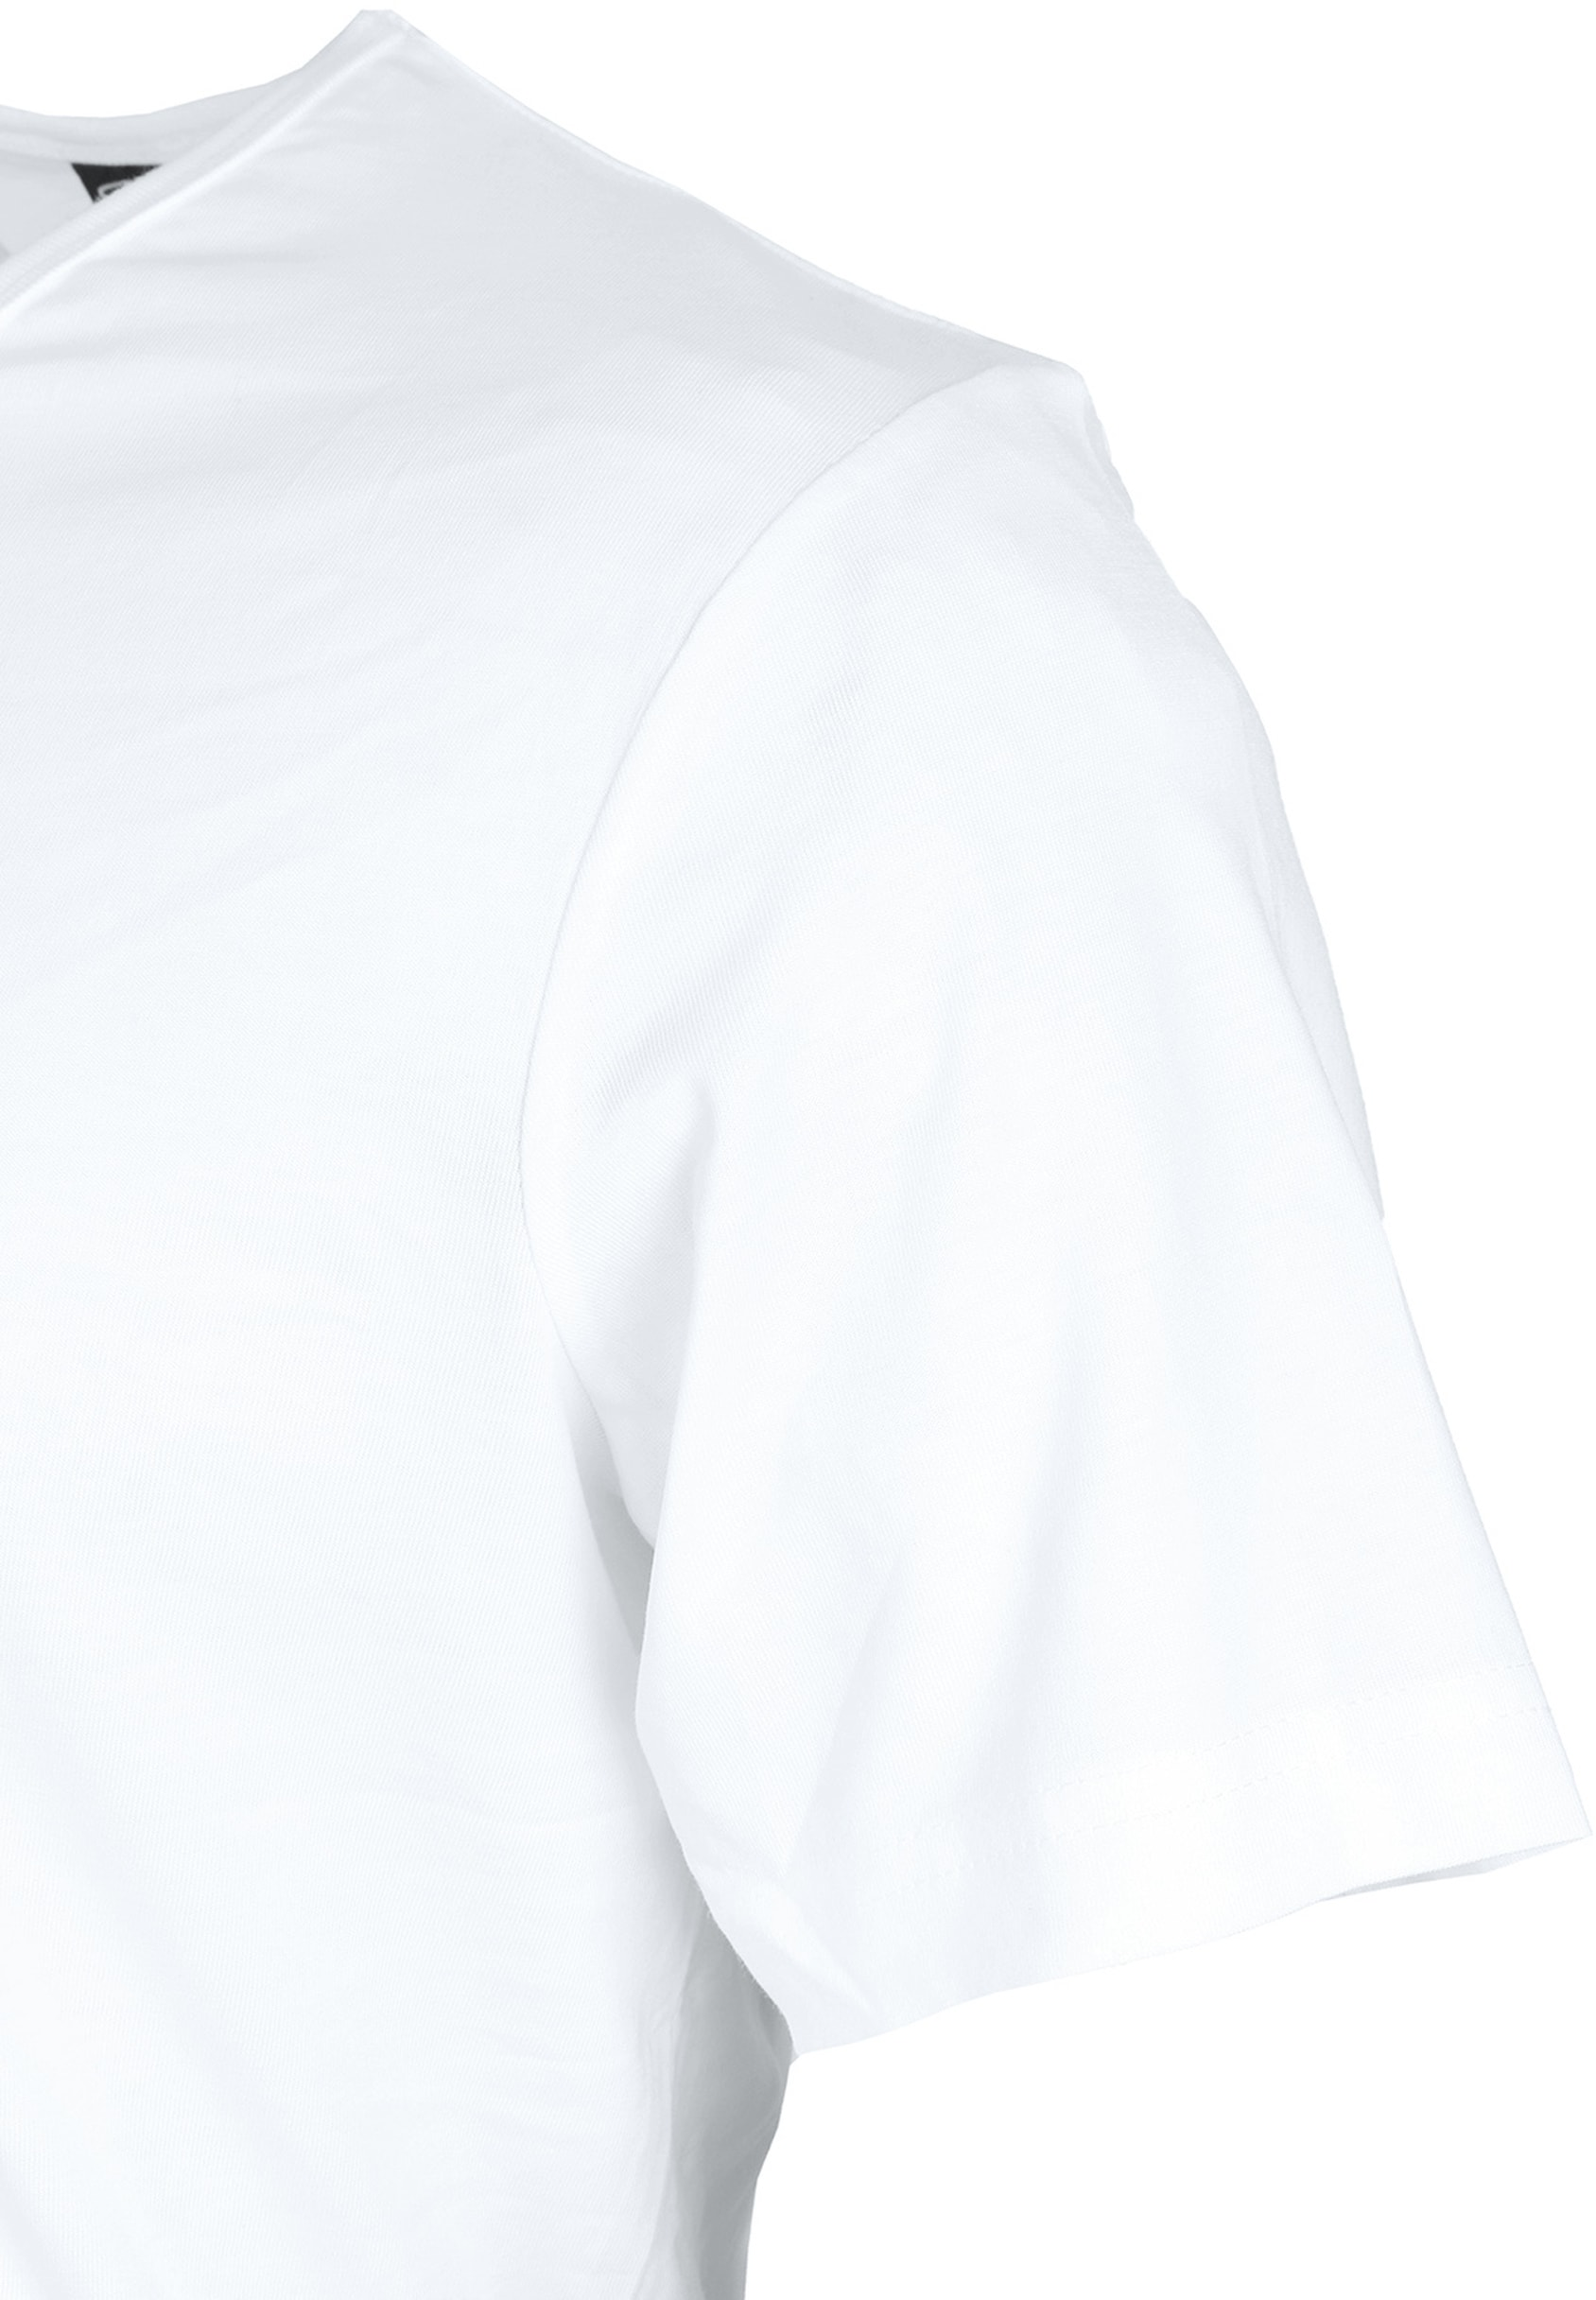 White T-shirt 6-Pack V-Neck foto 3